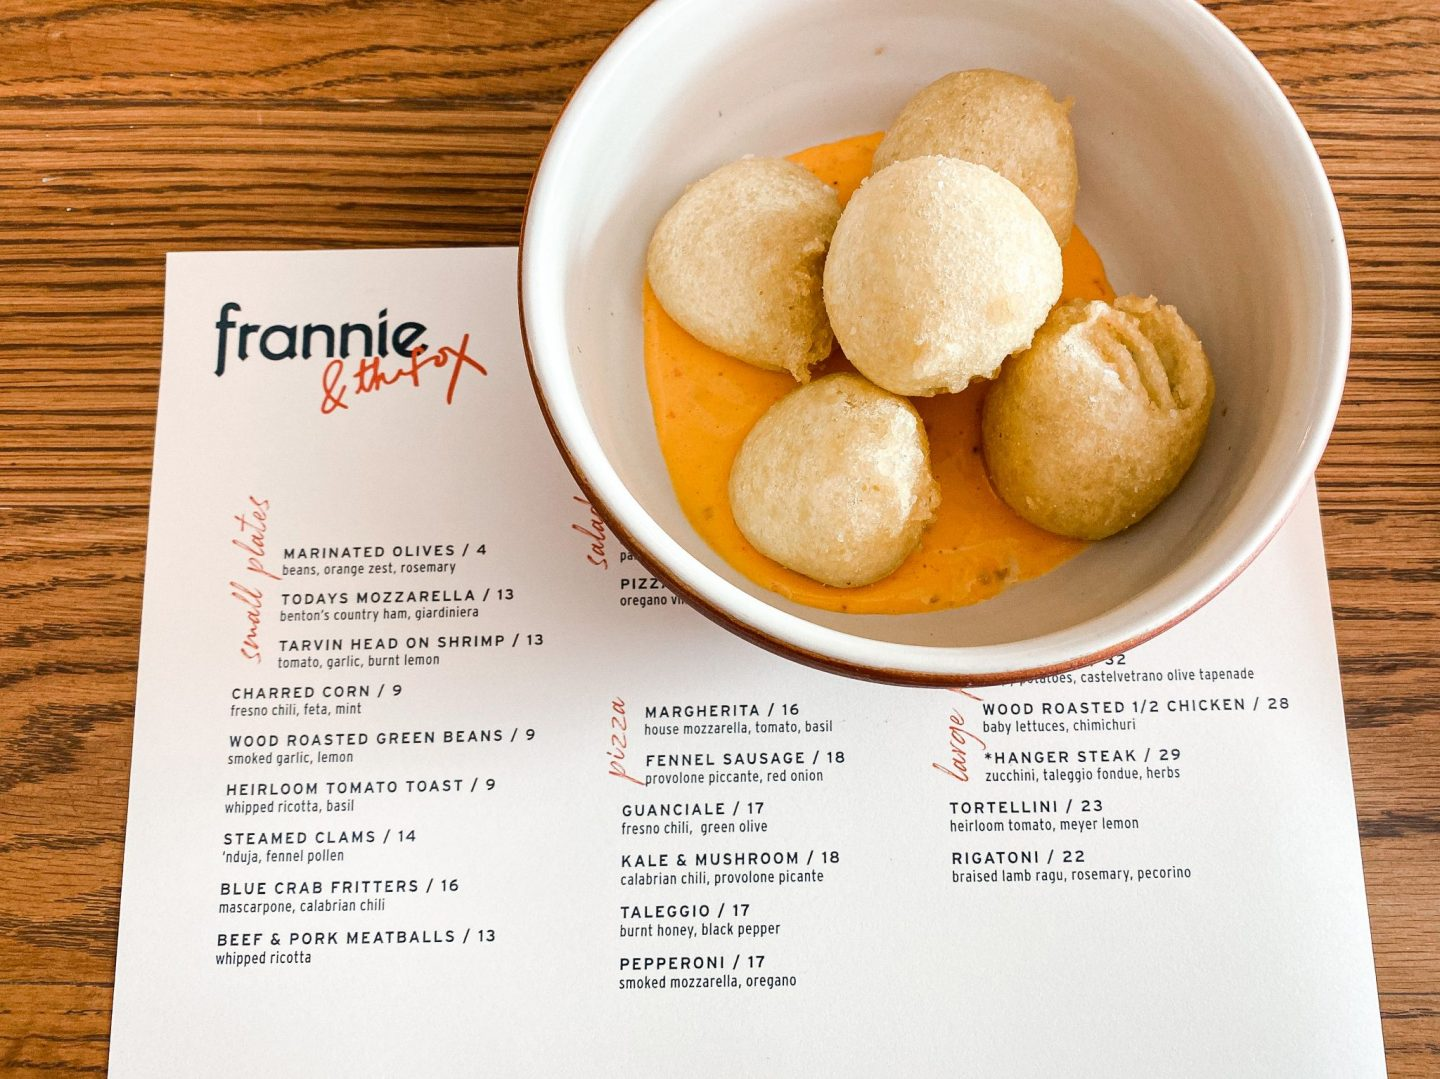 Frannie & Fox Blue Crab Fritters